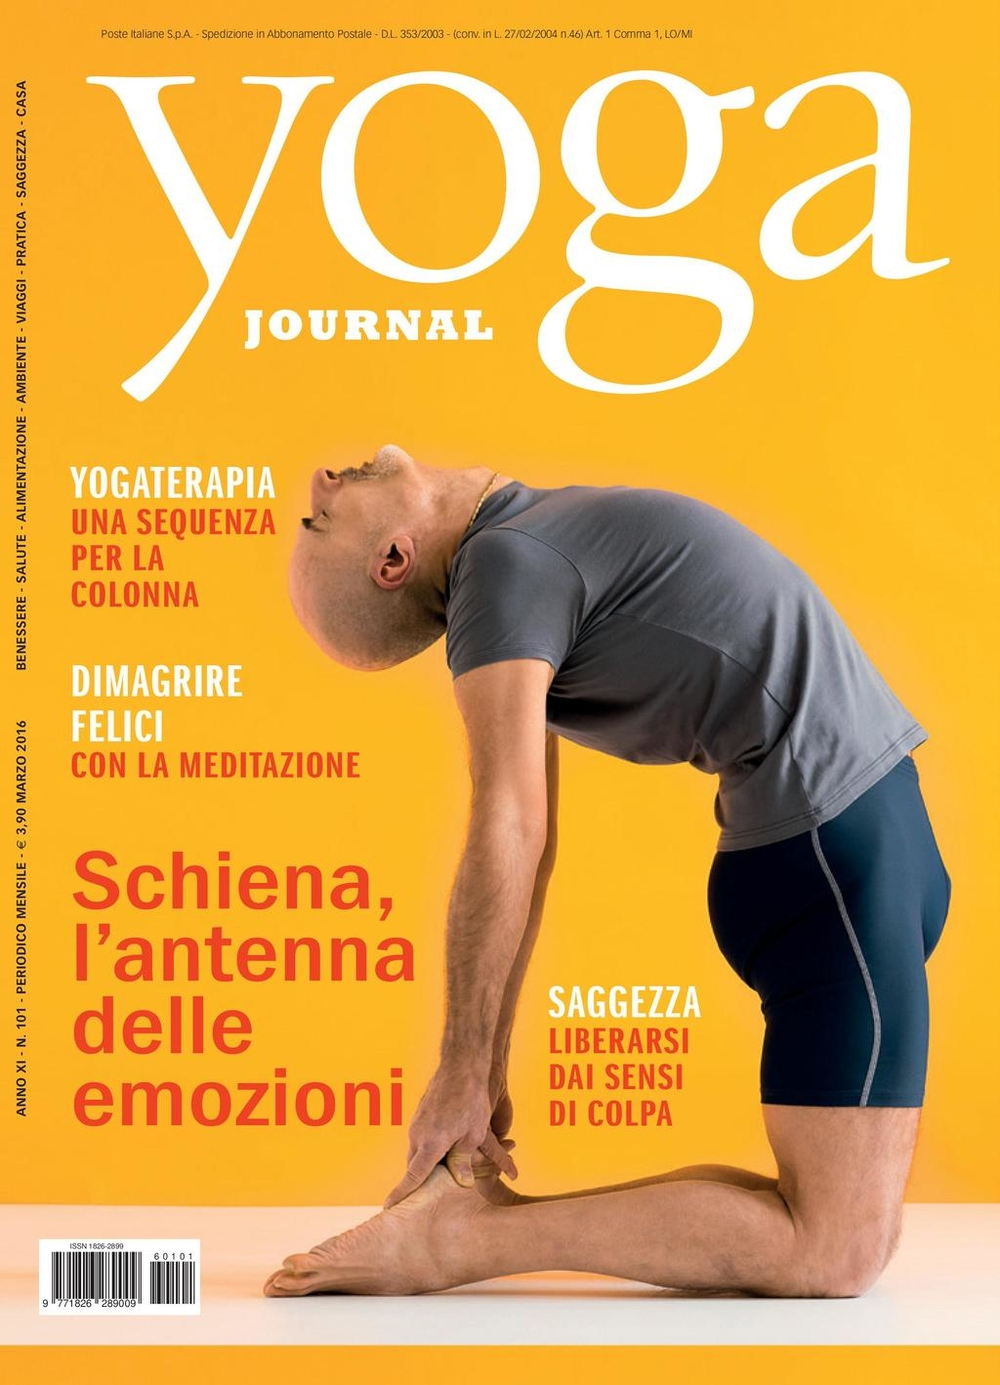 Yoga Journal n. 101